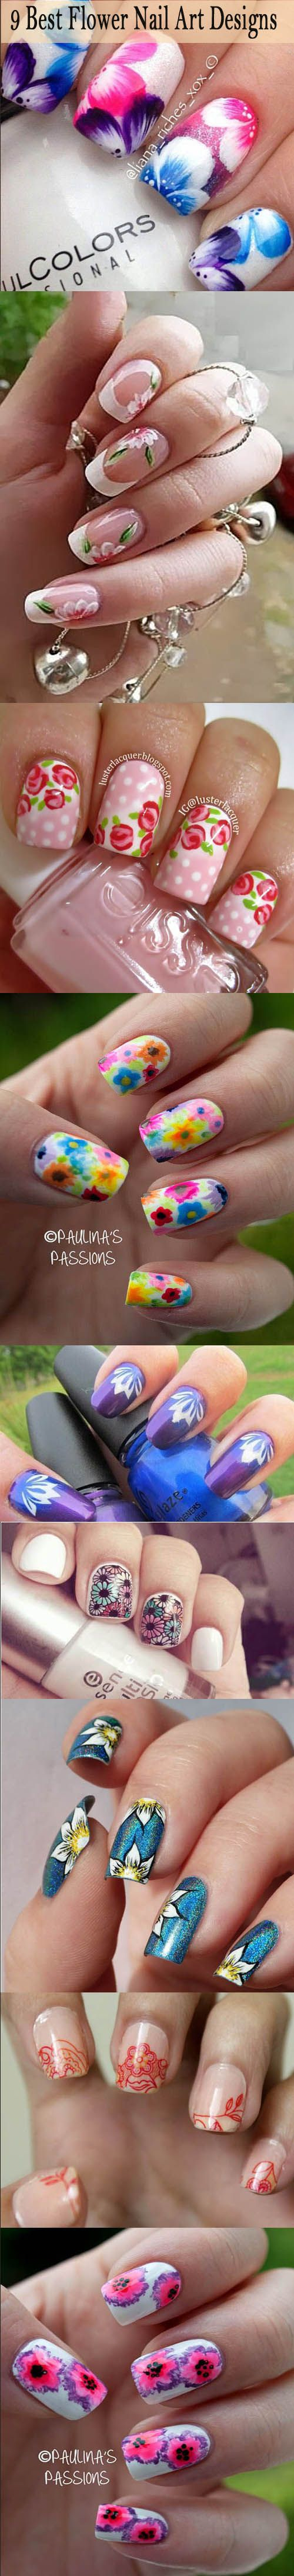 Best Flower Nail Art Designs  | See more at http://www.nailsss.com/acrylic-nails-ideas/3/